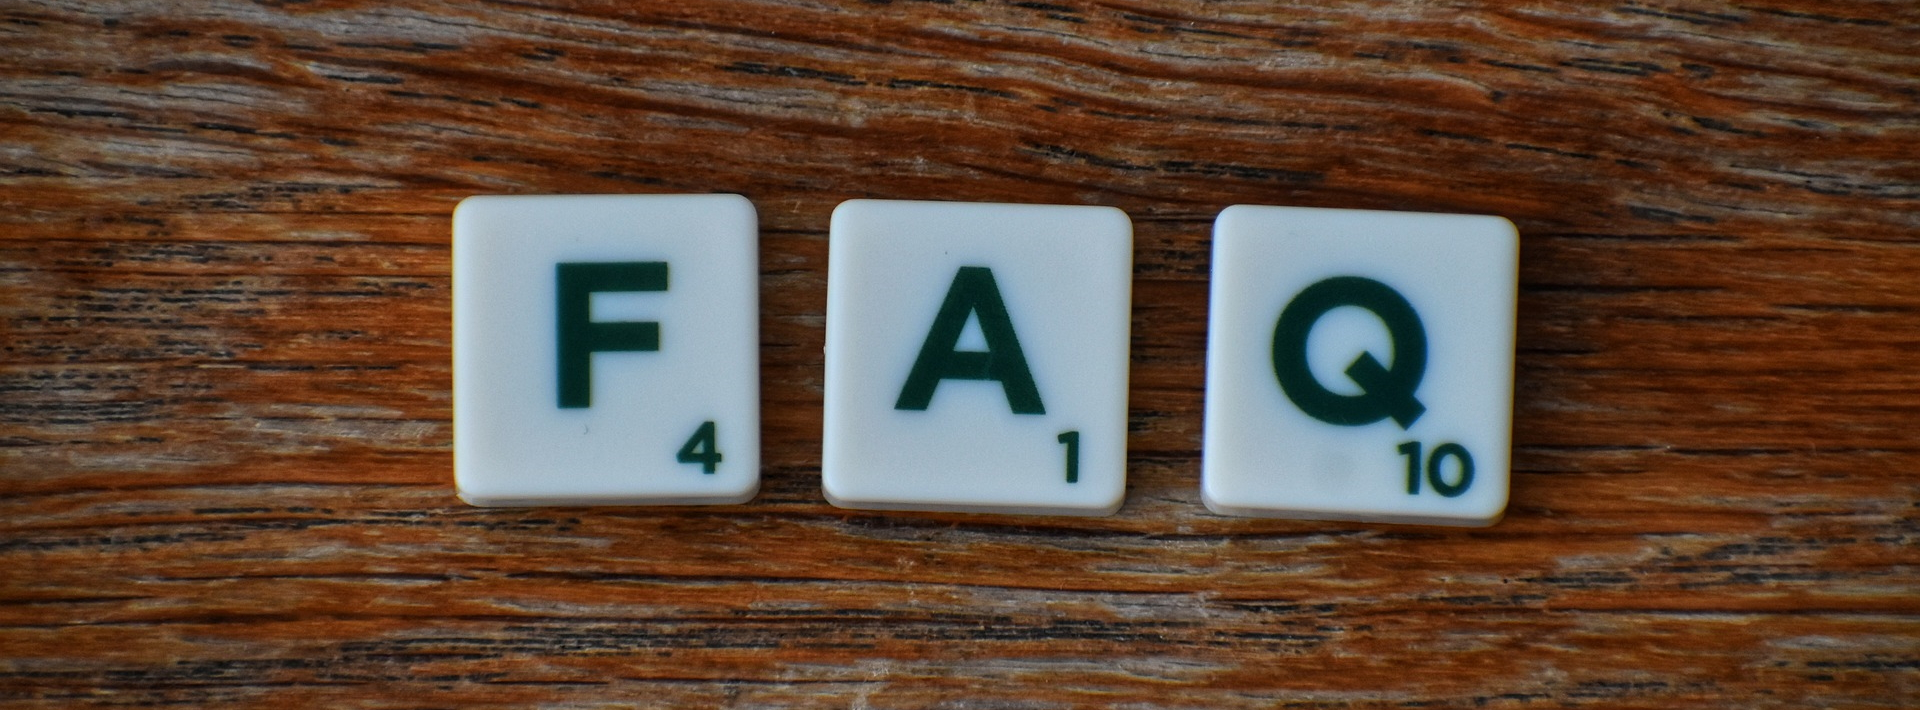 FAQ image made of Scrabble pieces